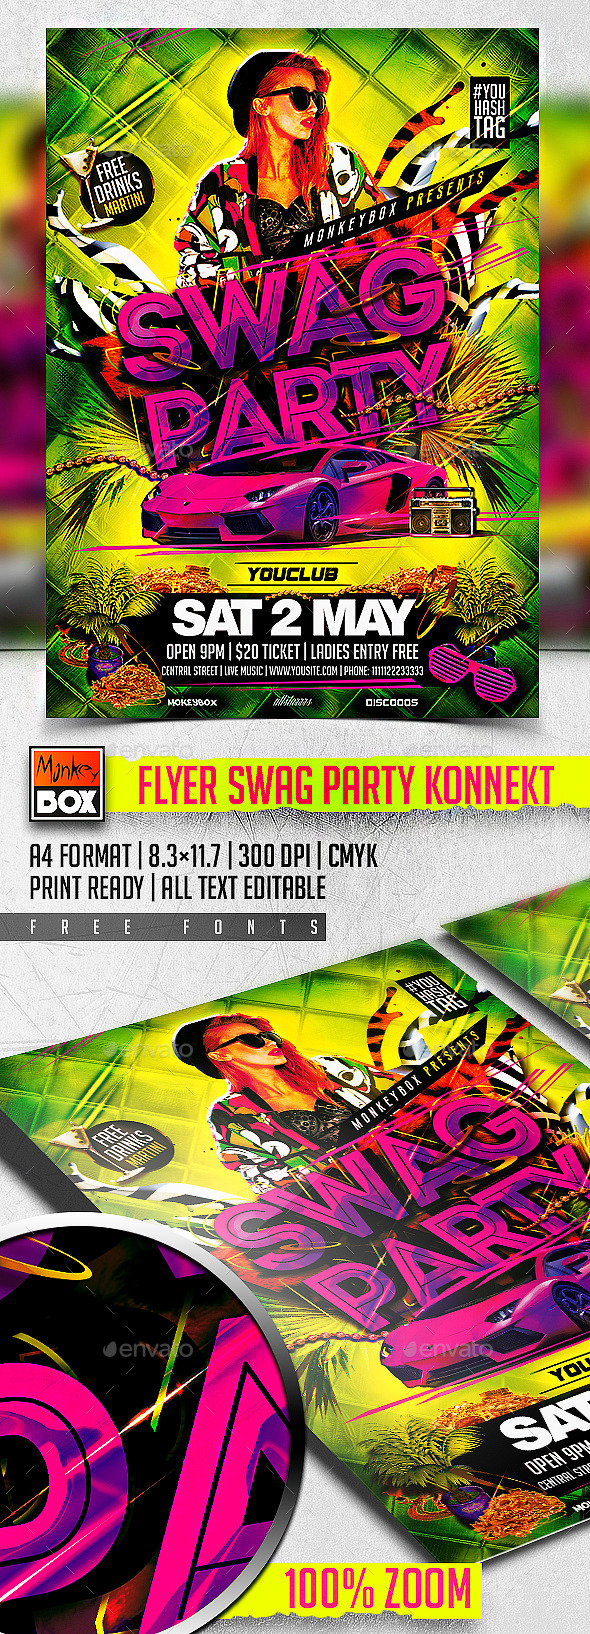 GraphicRiver Flyer Swag Party Konnekt 11255196